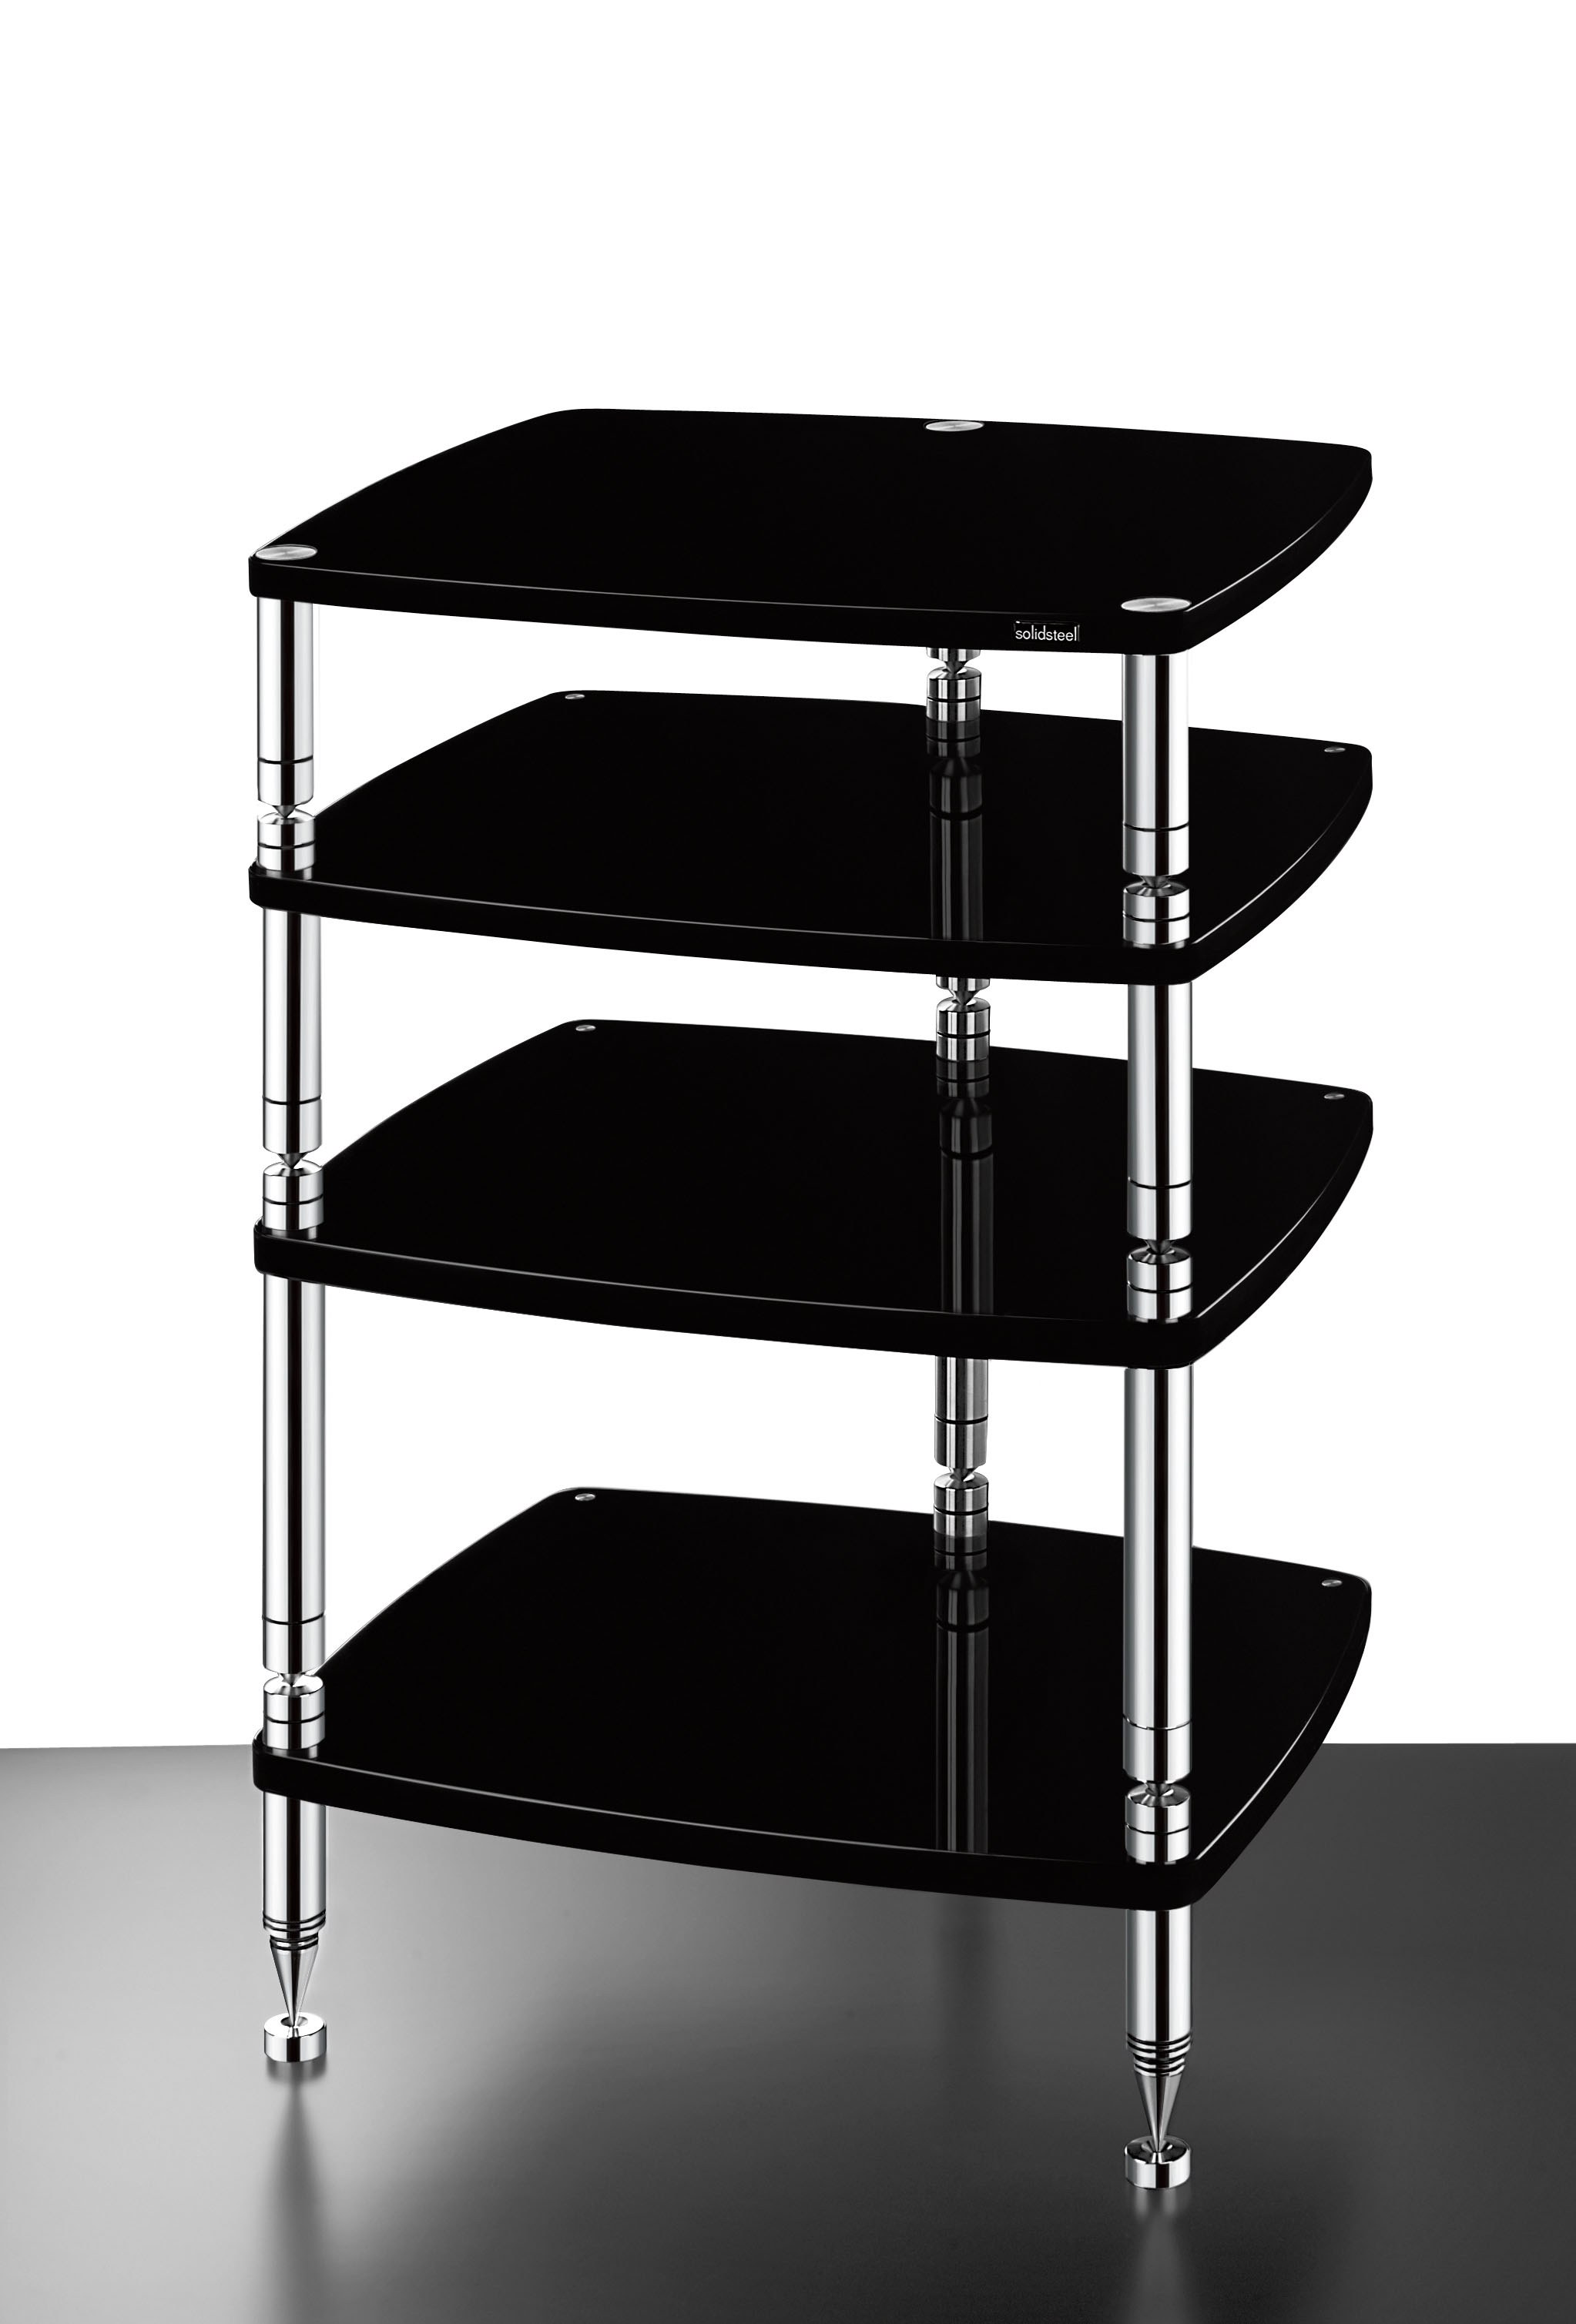 shelf end my hs rack audio solidsteel product gb high shelves inch